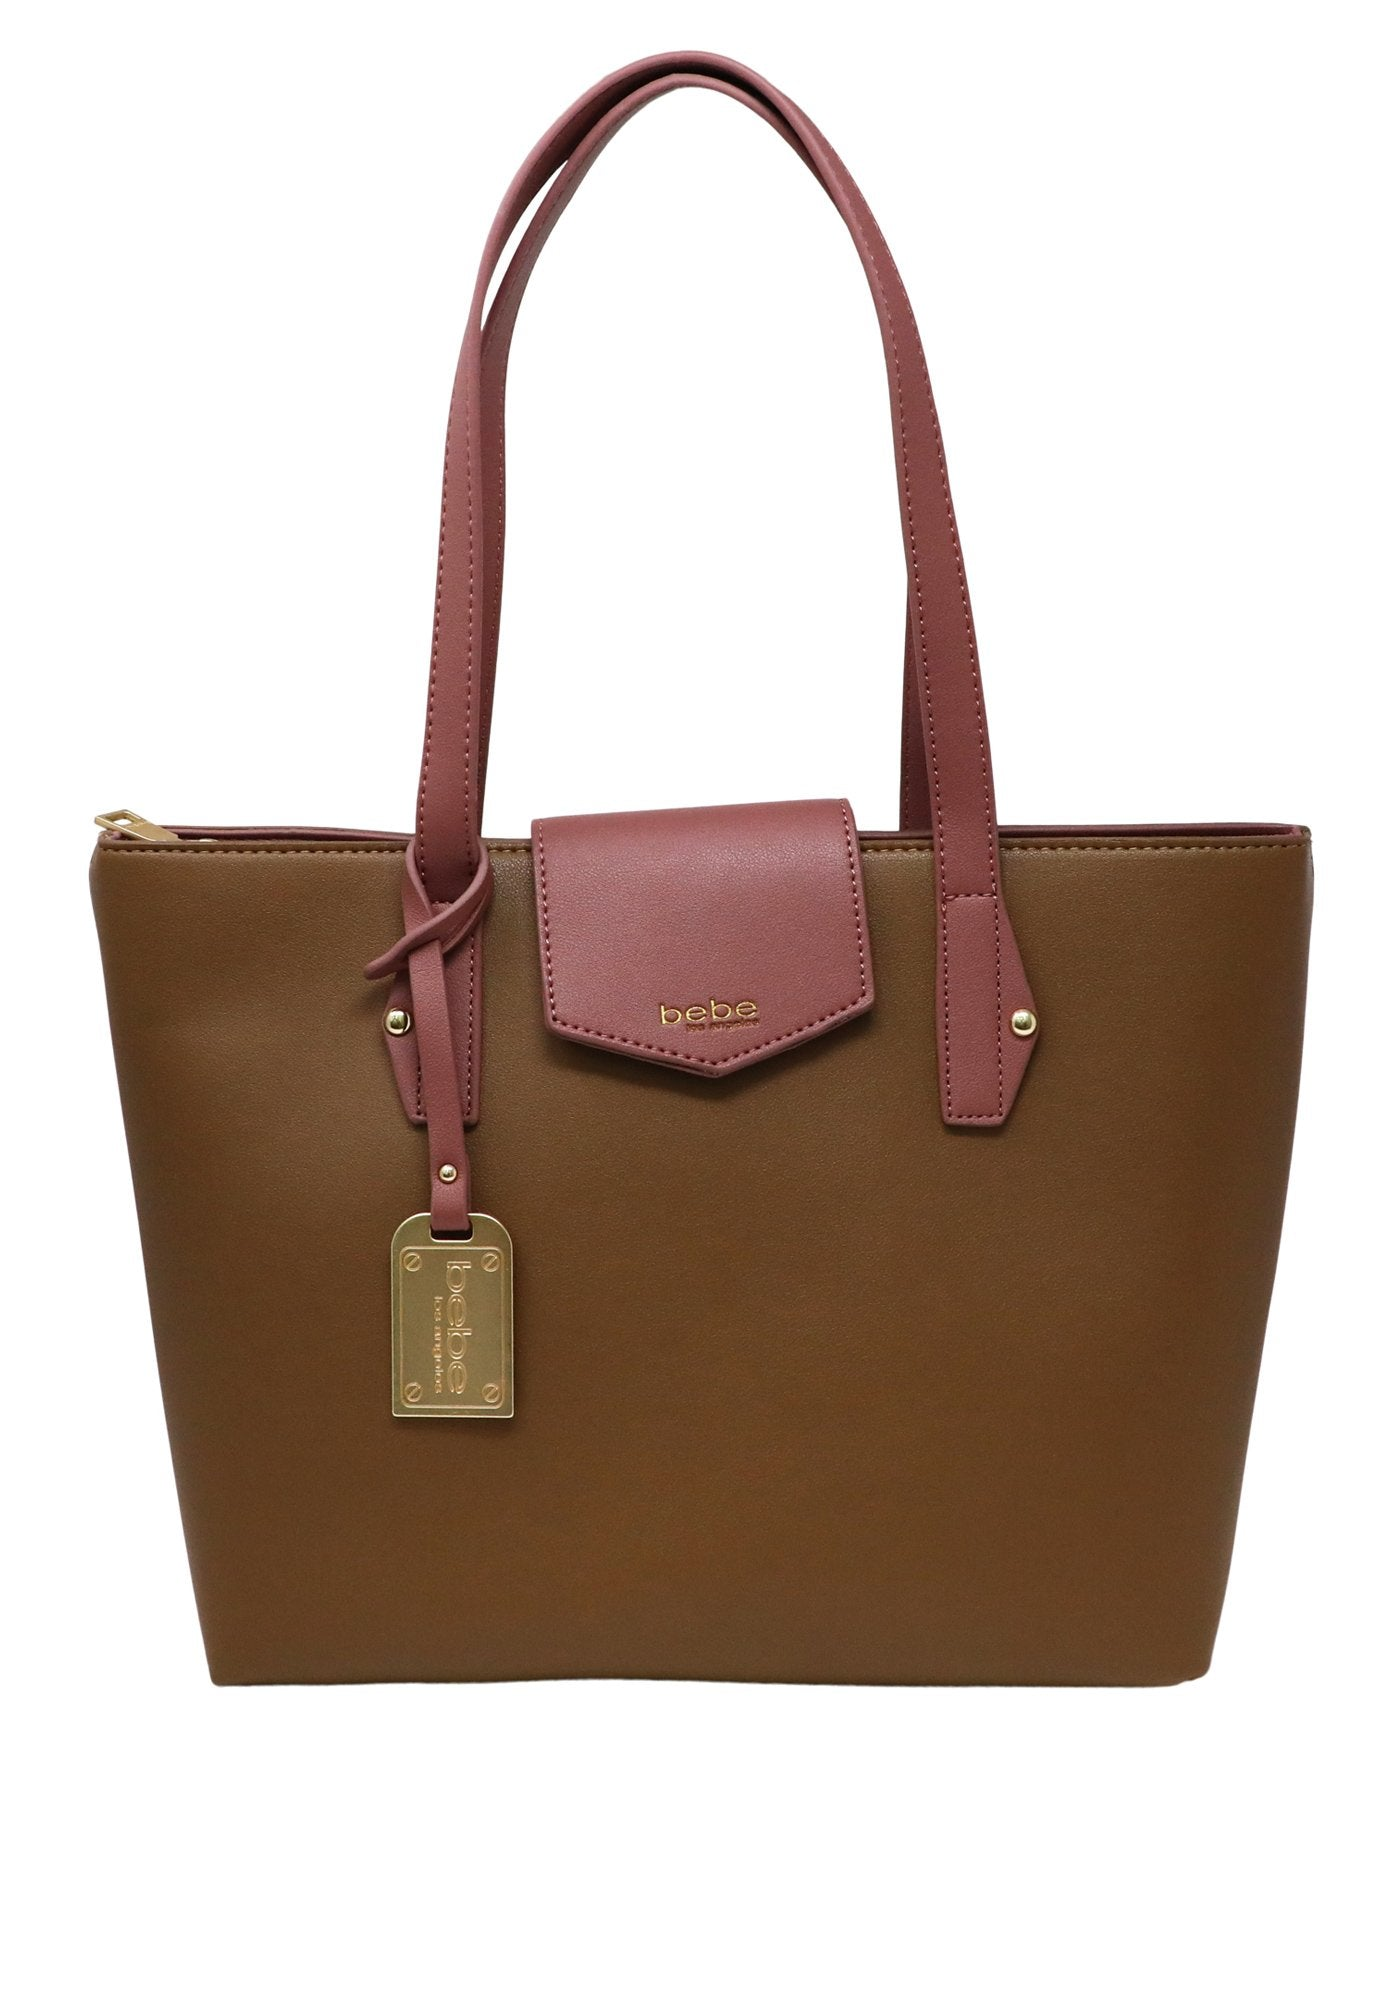 Bebe Women's Karla 2-Tone Tote Bag, Size OS in Taupe/Rose Polyurethane